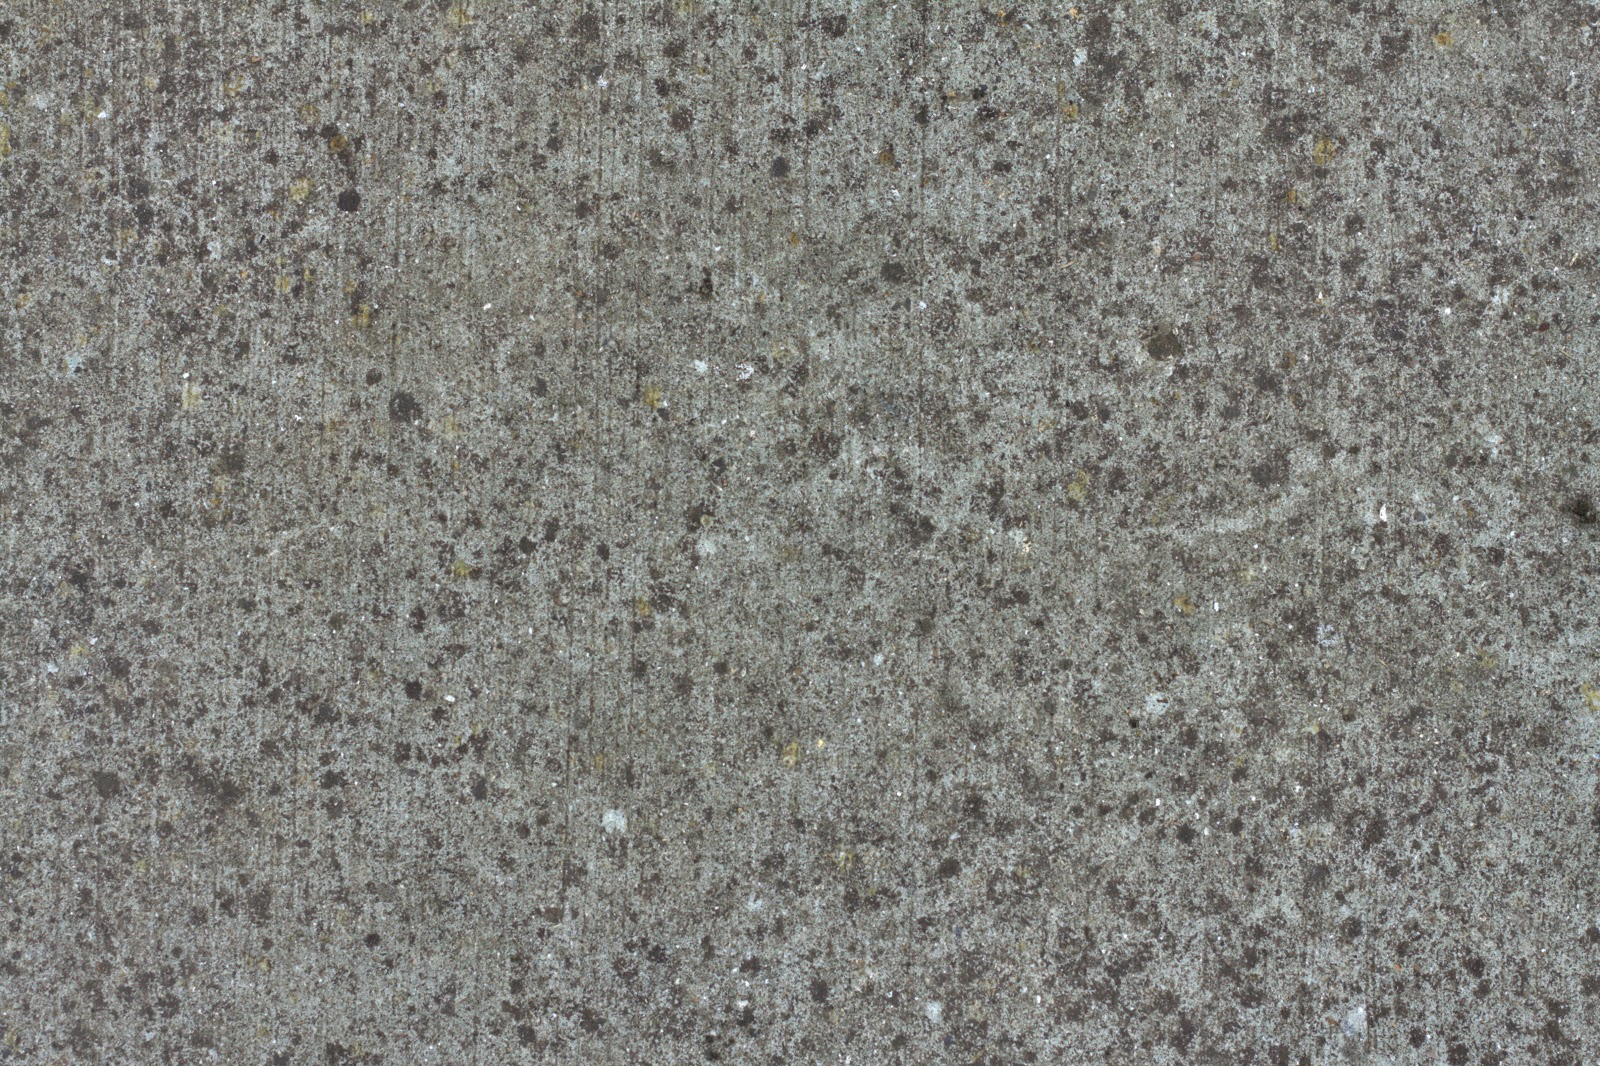 (Concrete 20) Beautiful granite concrete stone texture 4770x3178